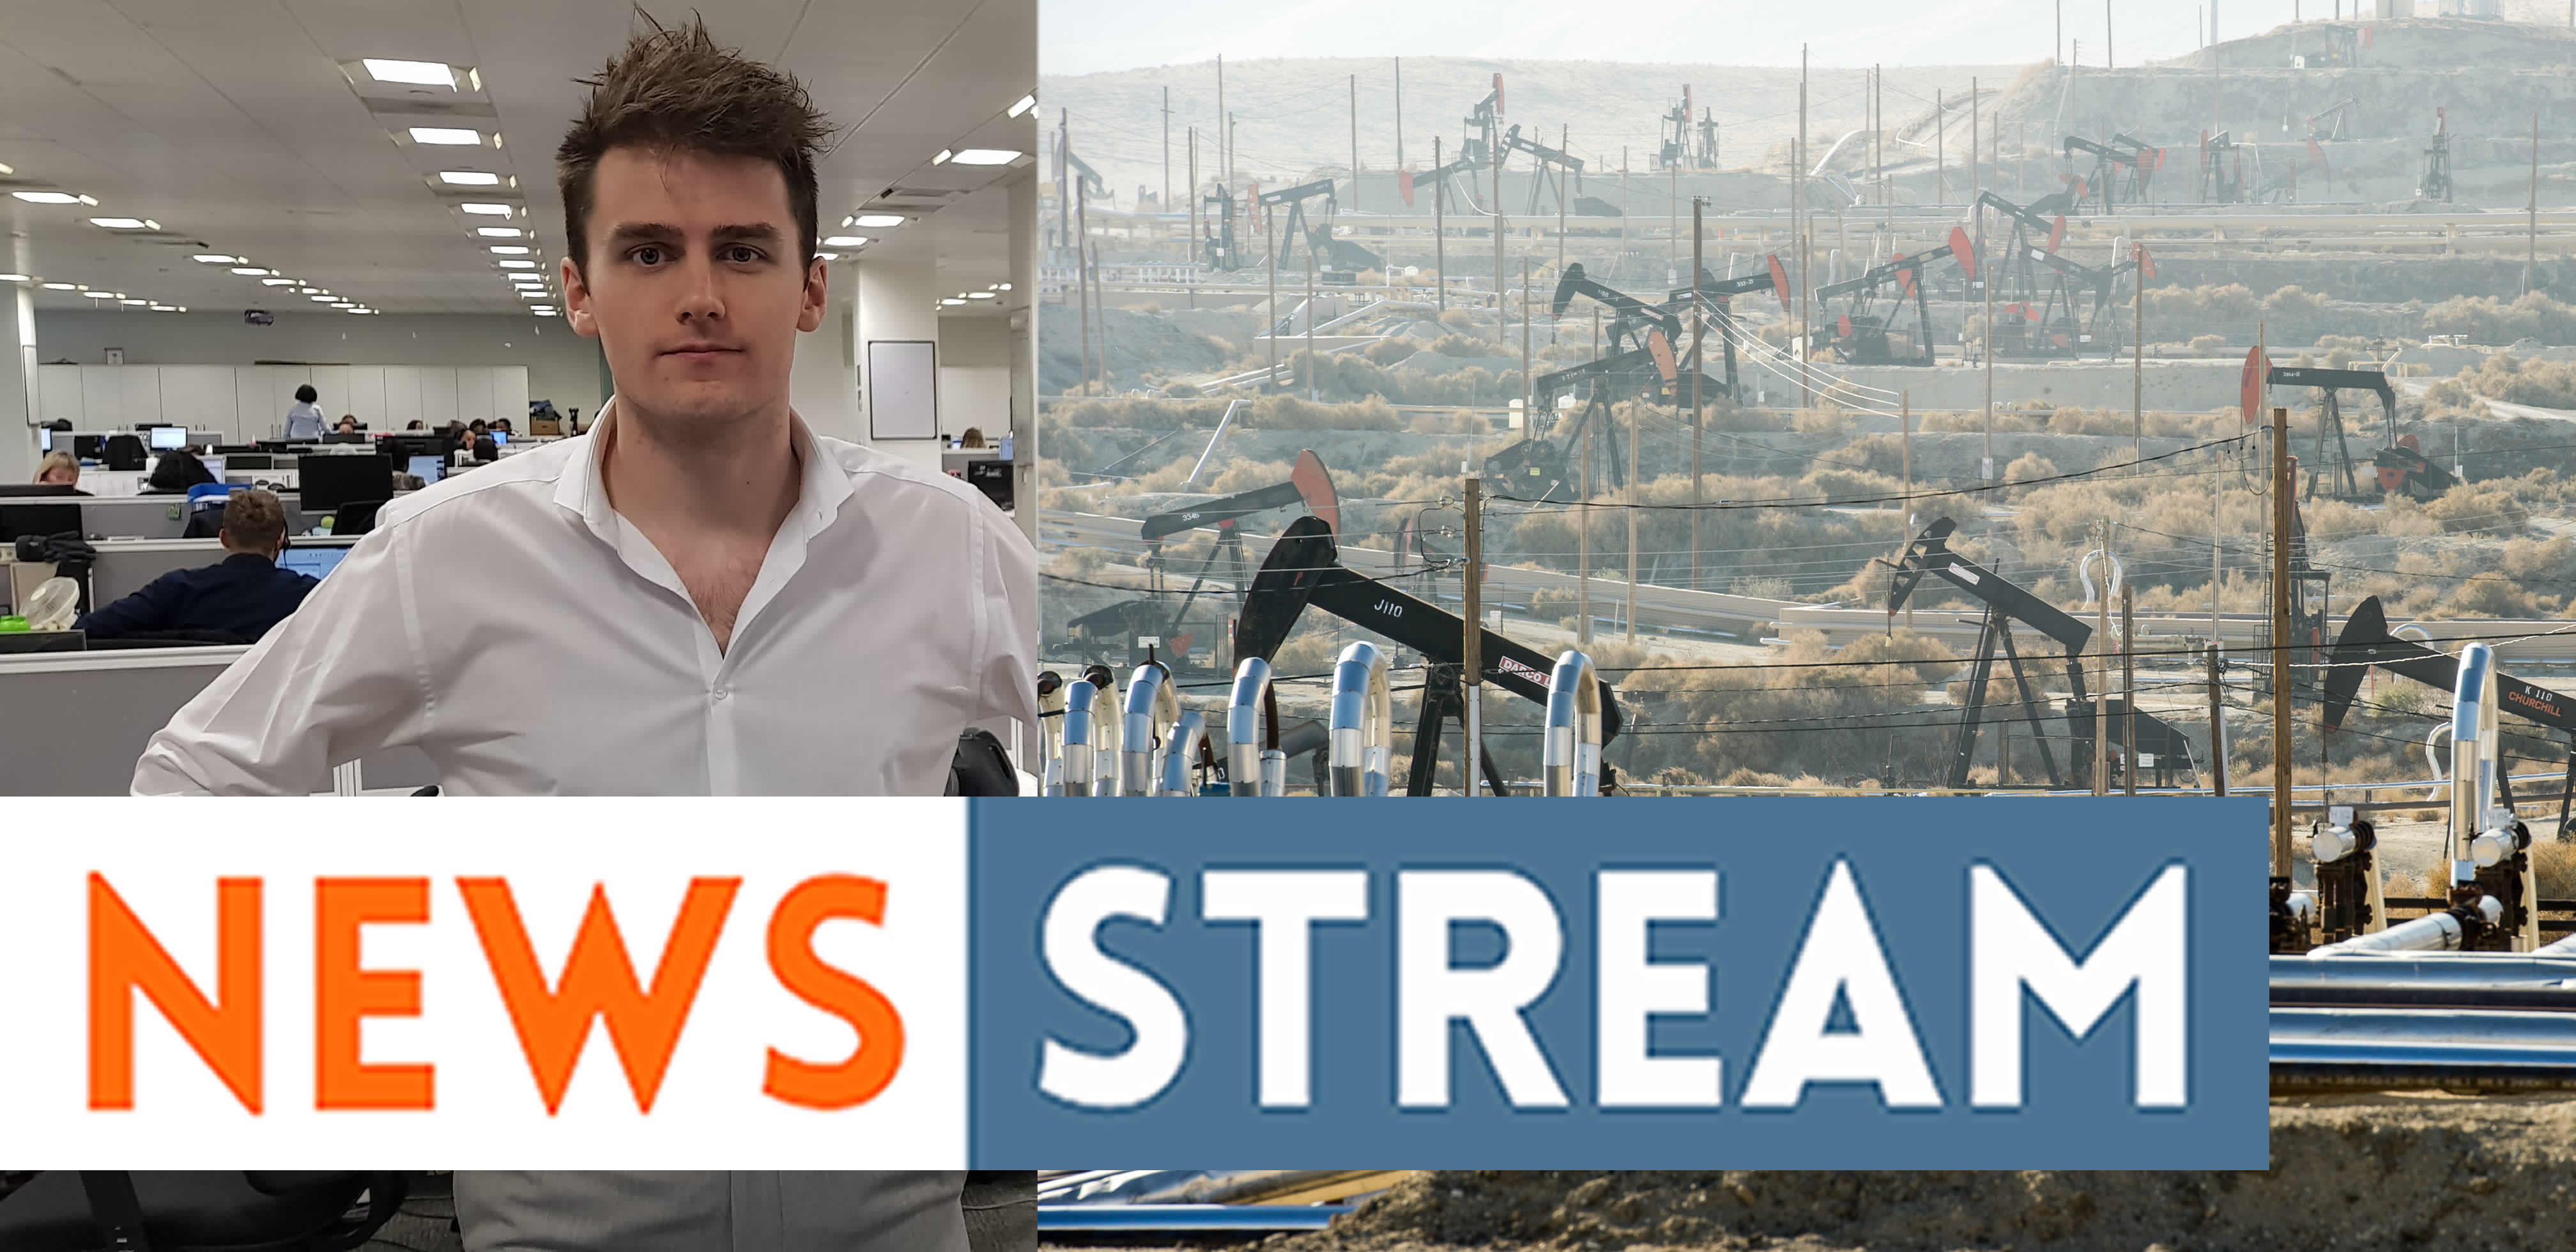 News Stream - Top 10 oil and gas trends 2019 | Oil & Gas IQ